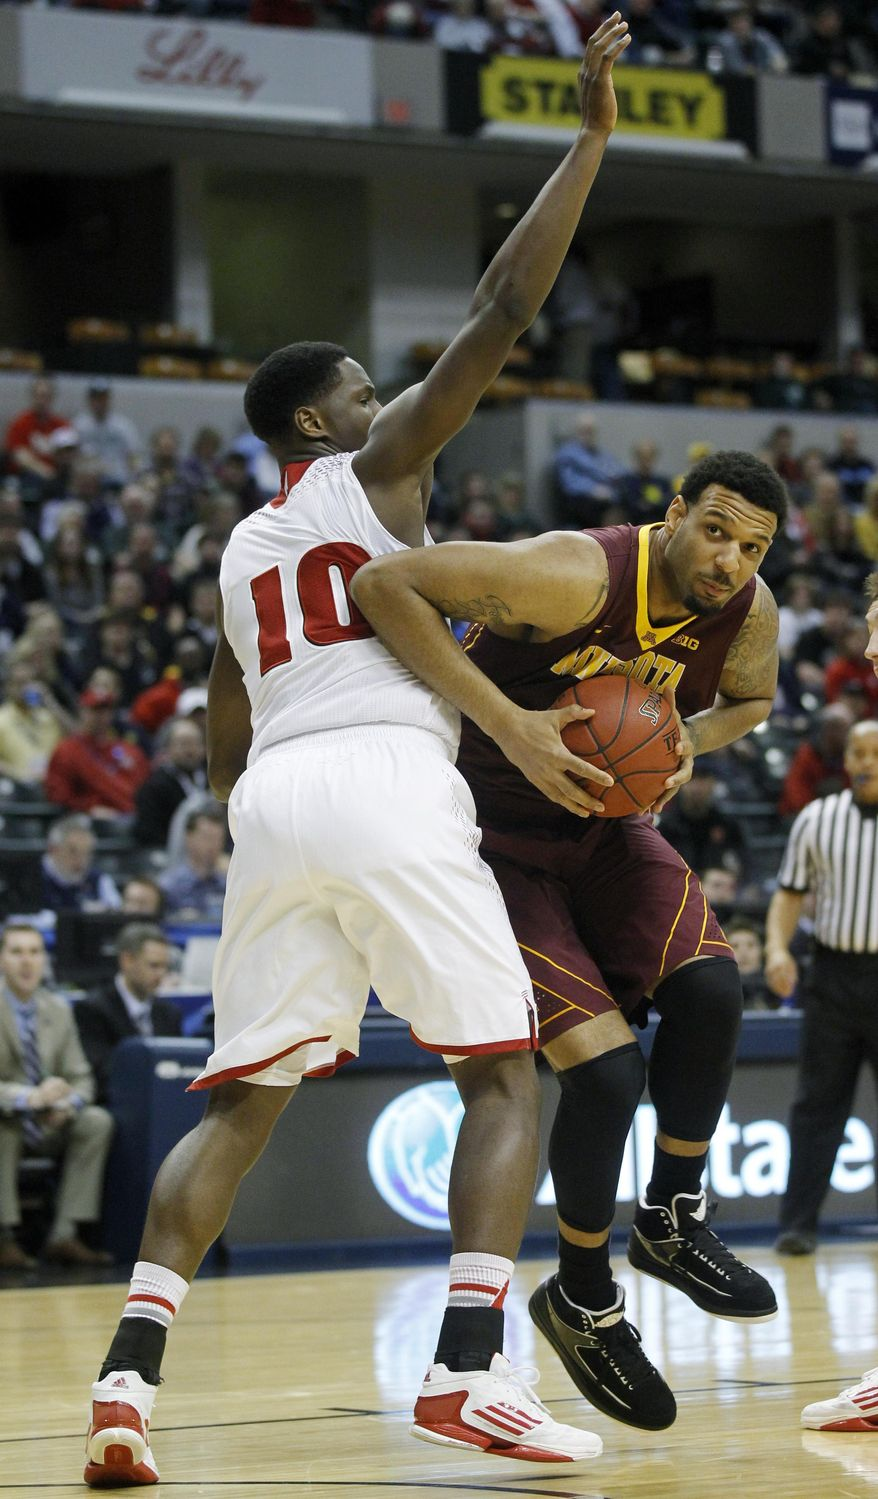 Minnesota forward Maurice Walker drives the ball around Wisconsin forward Nigel Hayes (10) in the first half of an NCAA college basketball game in the quarterfinals of the Big Ten Conference tournament Friday, March 14, 2014, in Indianapolis. (AP Photo/Kiichiro Sato)